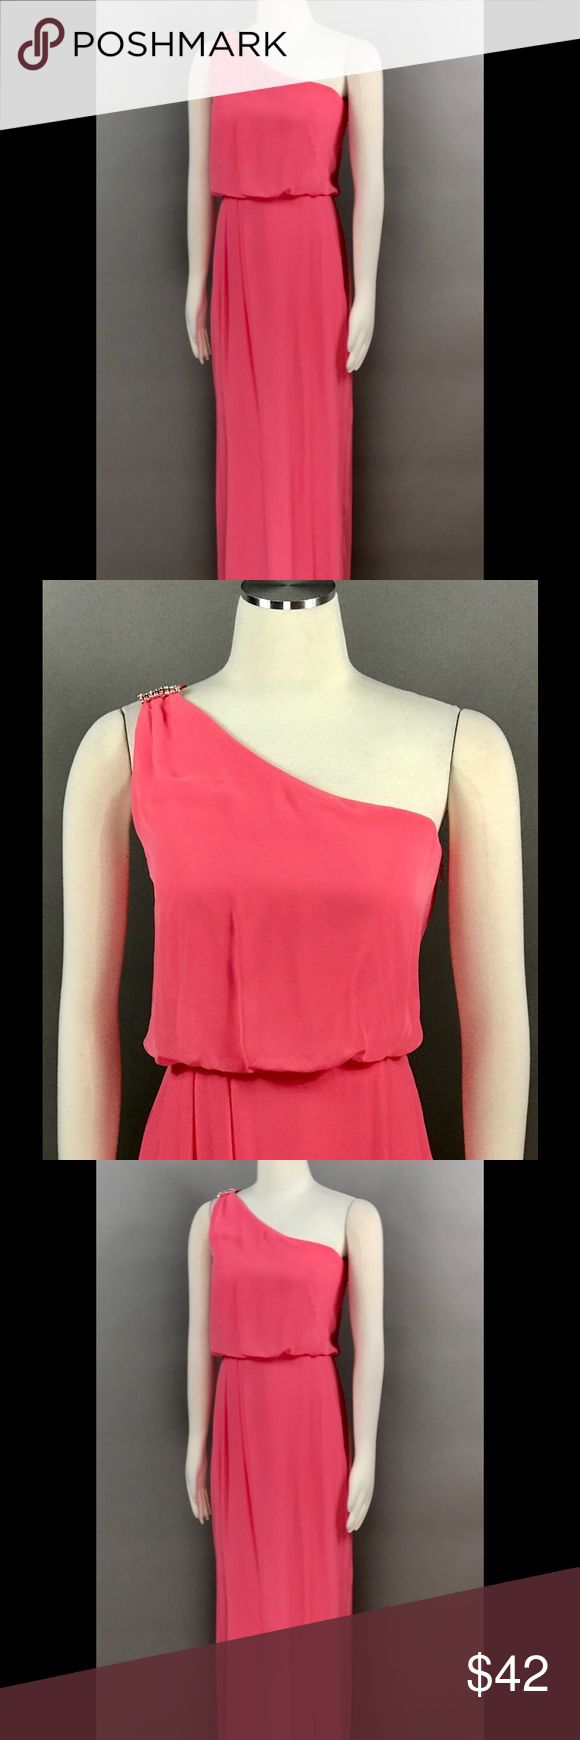 ADRIANNA PAPELL Coral Maxi Dress One Shoulder ADRIANNA PAPELL Coral Maxi Cocktail Dress Sz 14 Chiffon One Rhinestone Embellished Shoulder Drape Tiered NEW Adrianna Papell Dresses Maxi